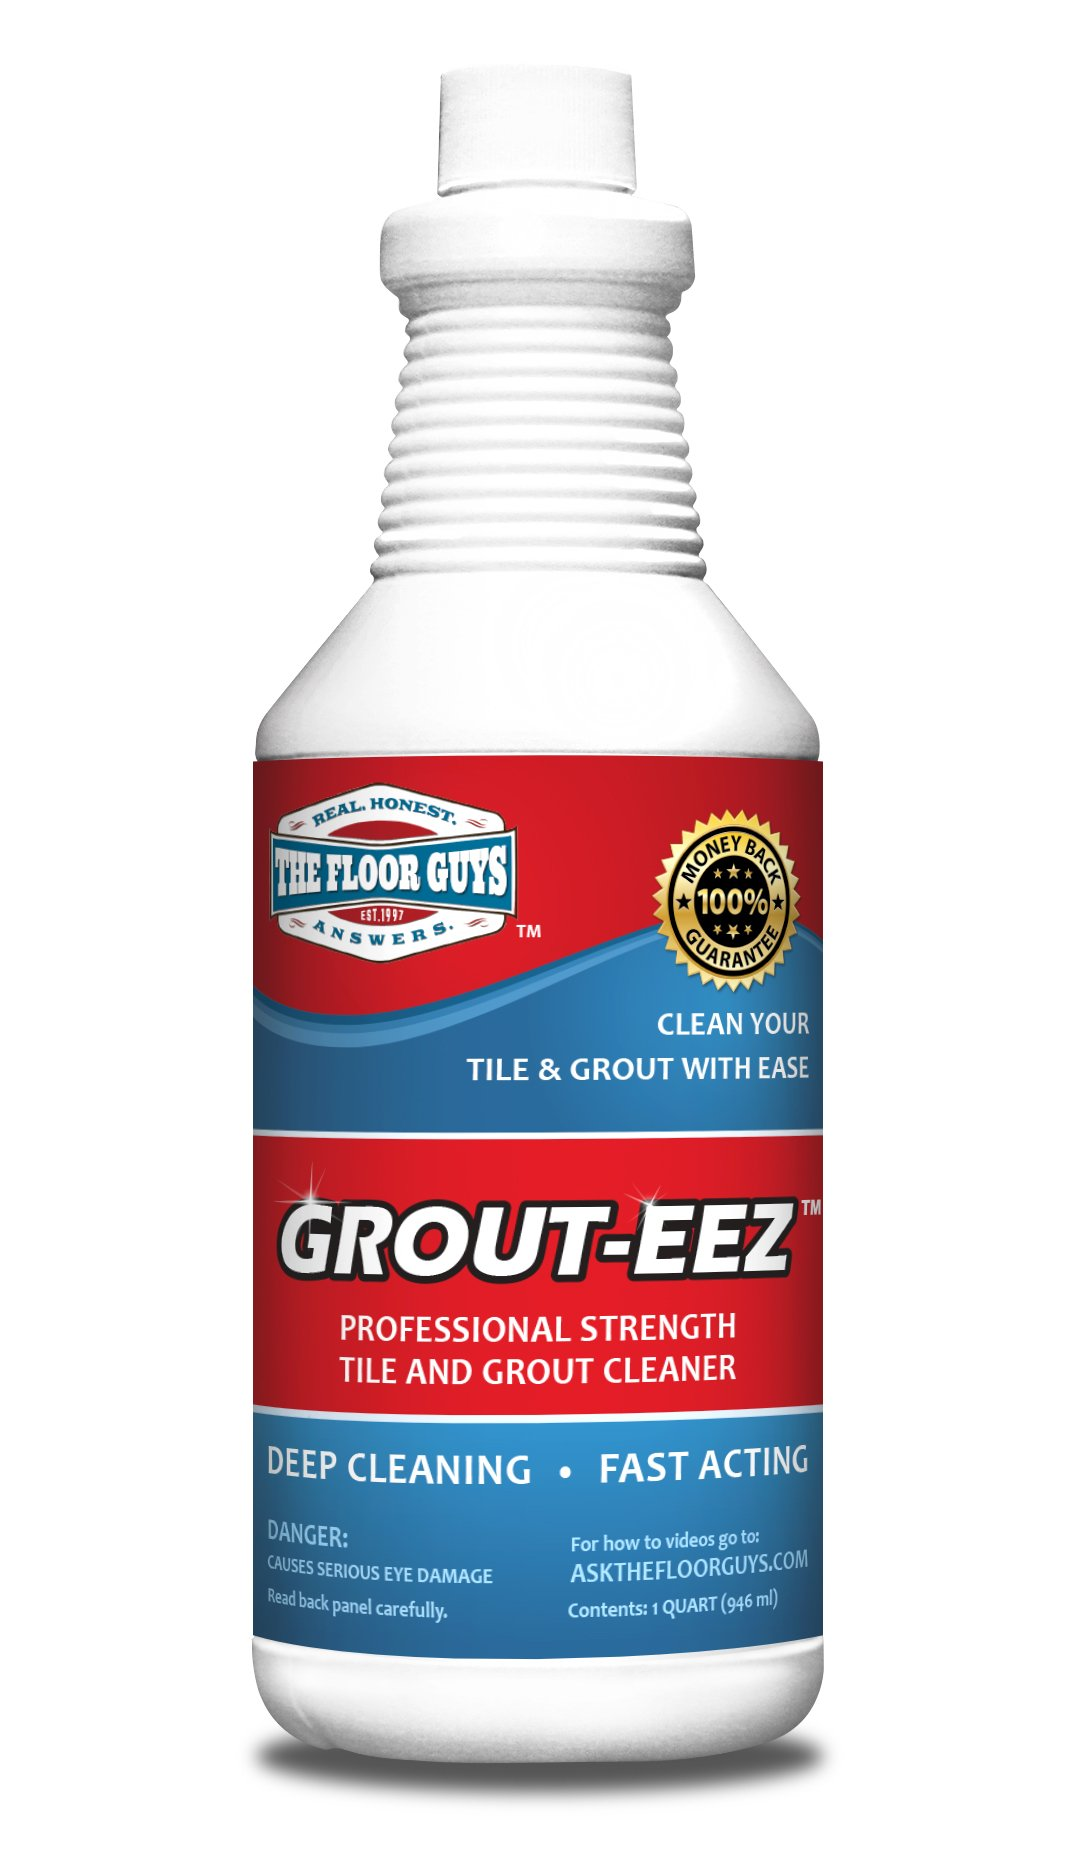 IT JUST WORKS! Grout-Eez Super Heavy-Duty Grout Cleaner. Easy and Safe To Use. Destroys Dirt and Grime With Ease. Even Safe For Colored Grout. The Floor Guys.